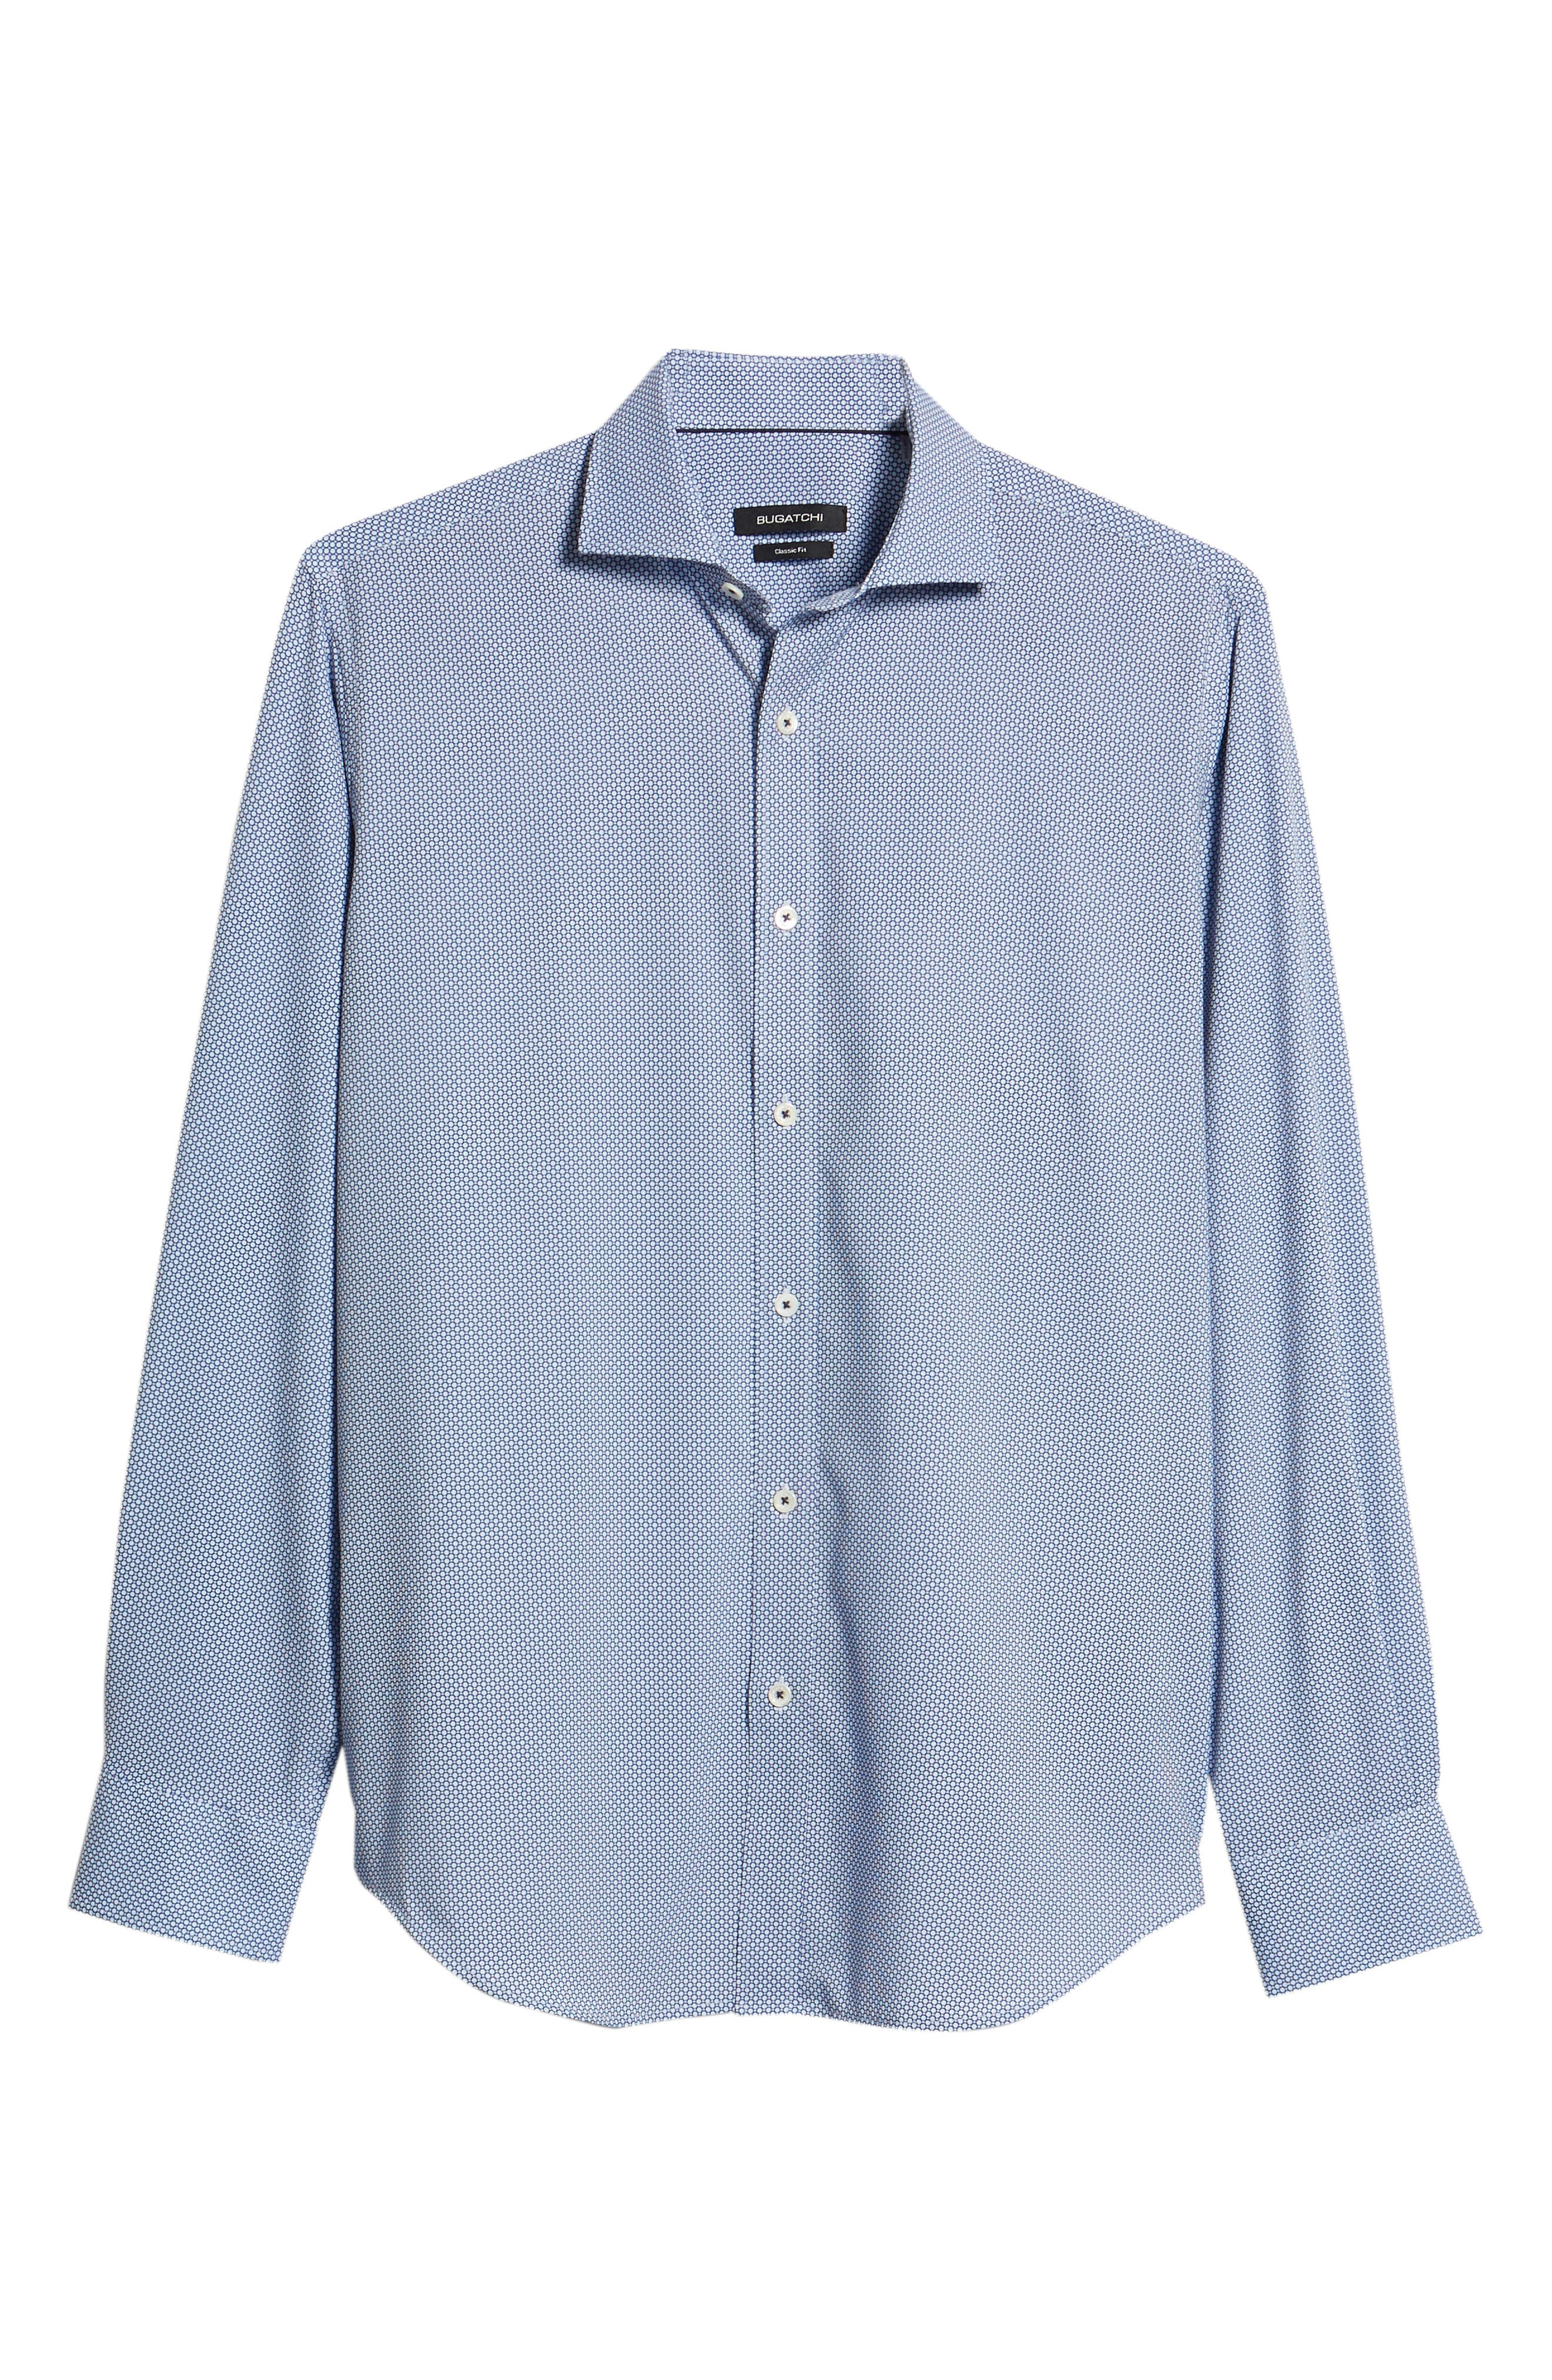 BUGATCHI,                             Classic Fit Stacked Circles Performance Sport Shirt,                             Alternate thumbnail 6, color,                             NAVY